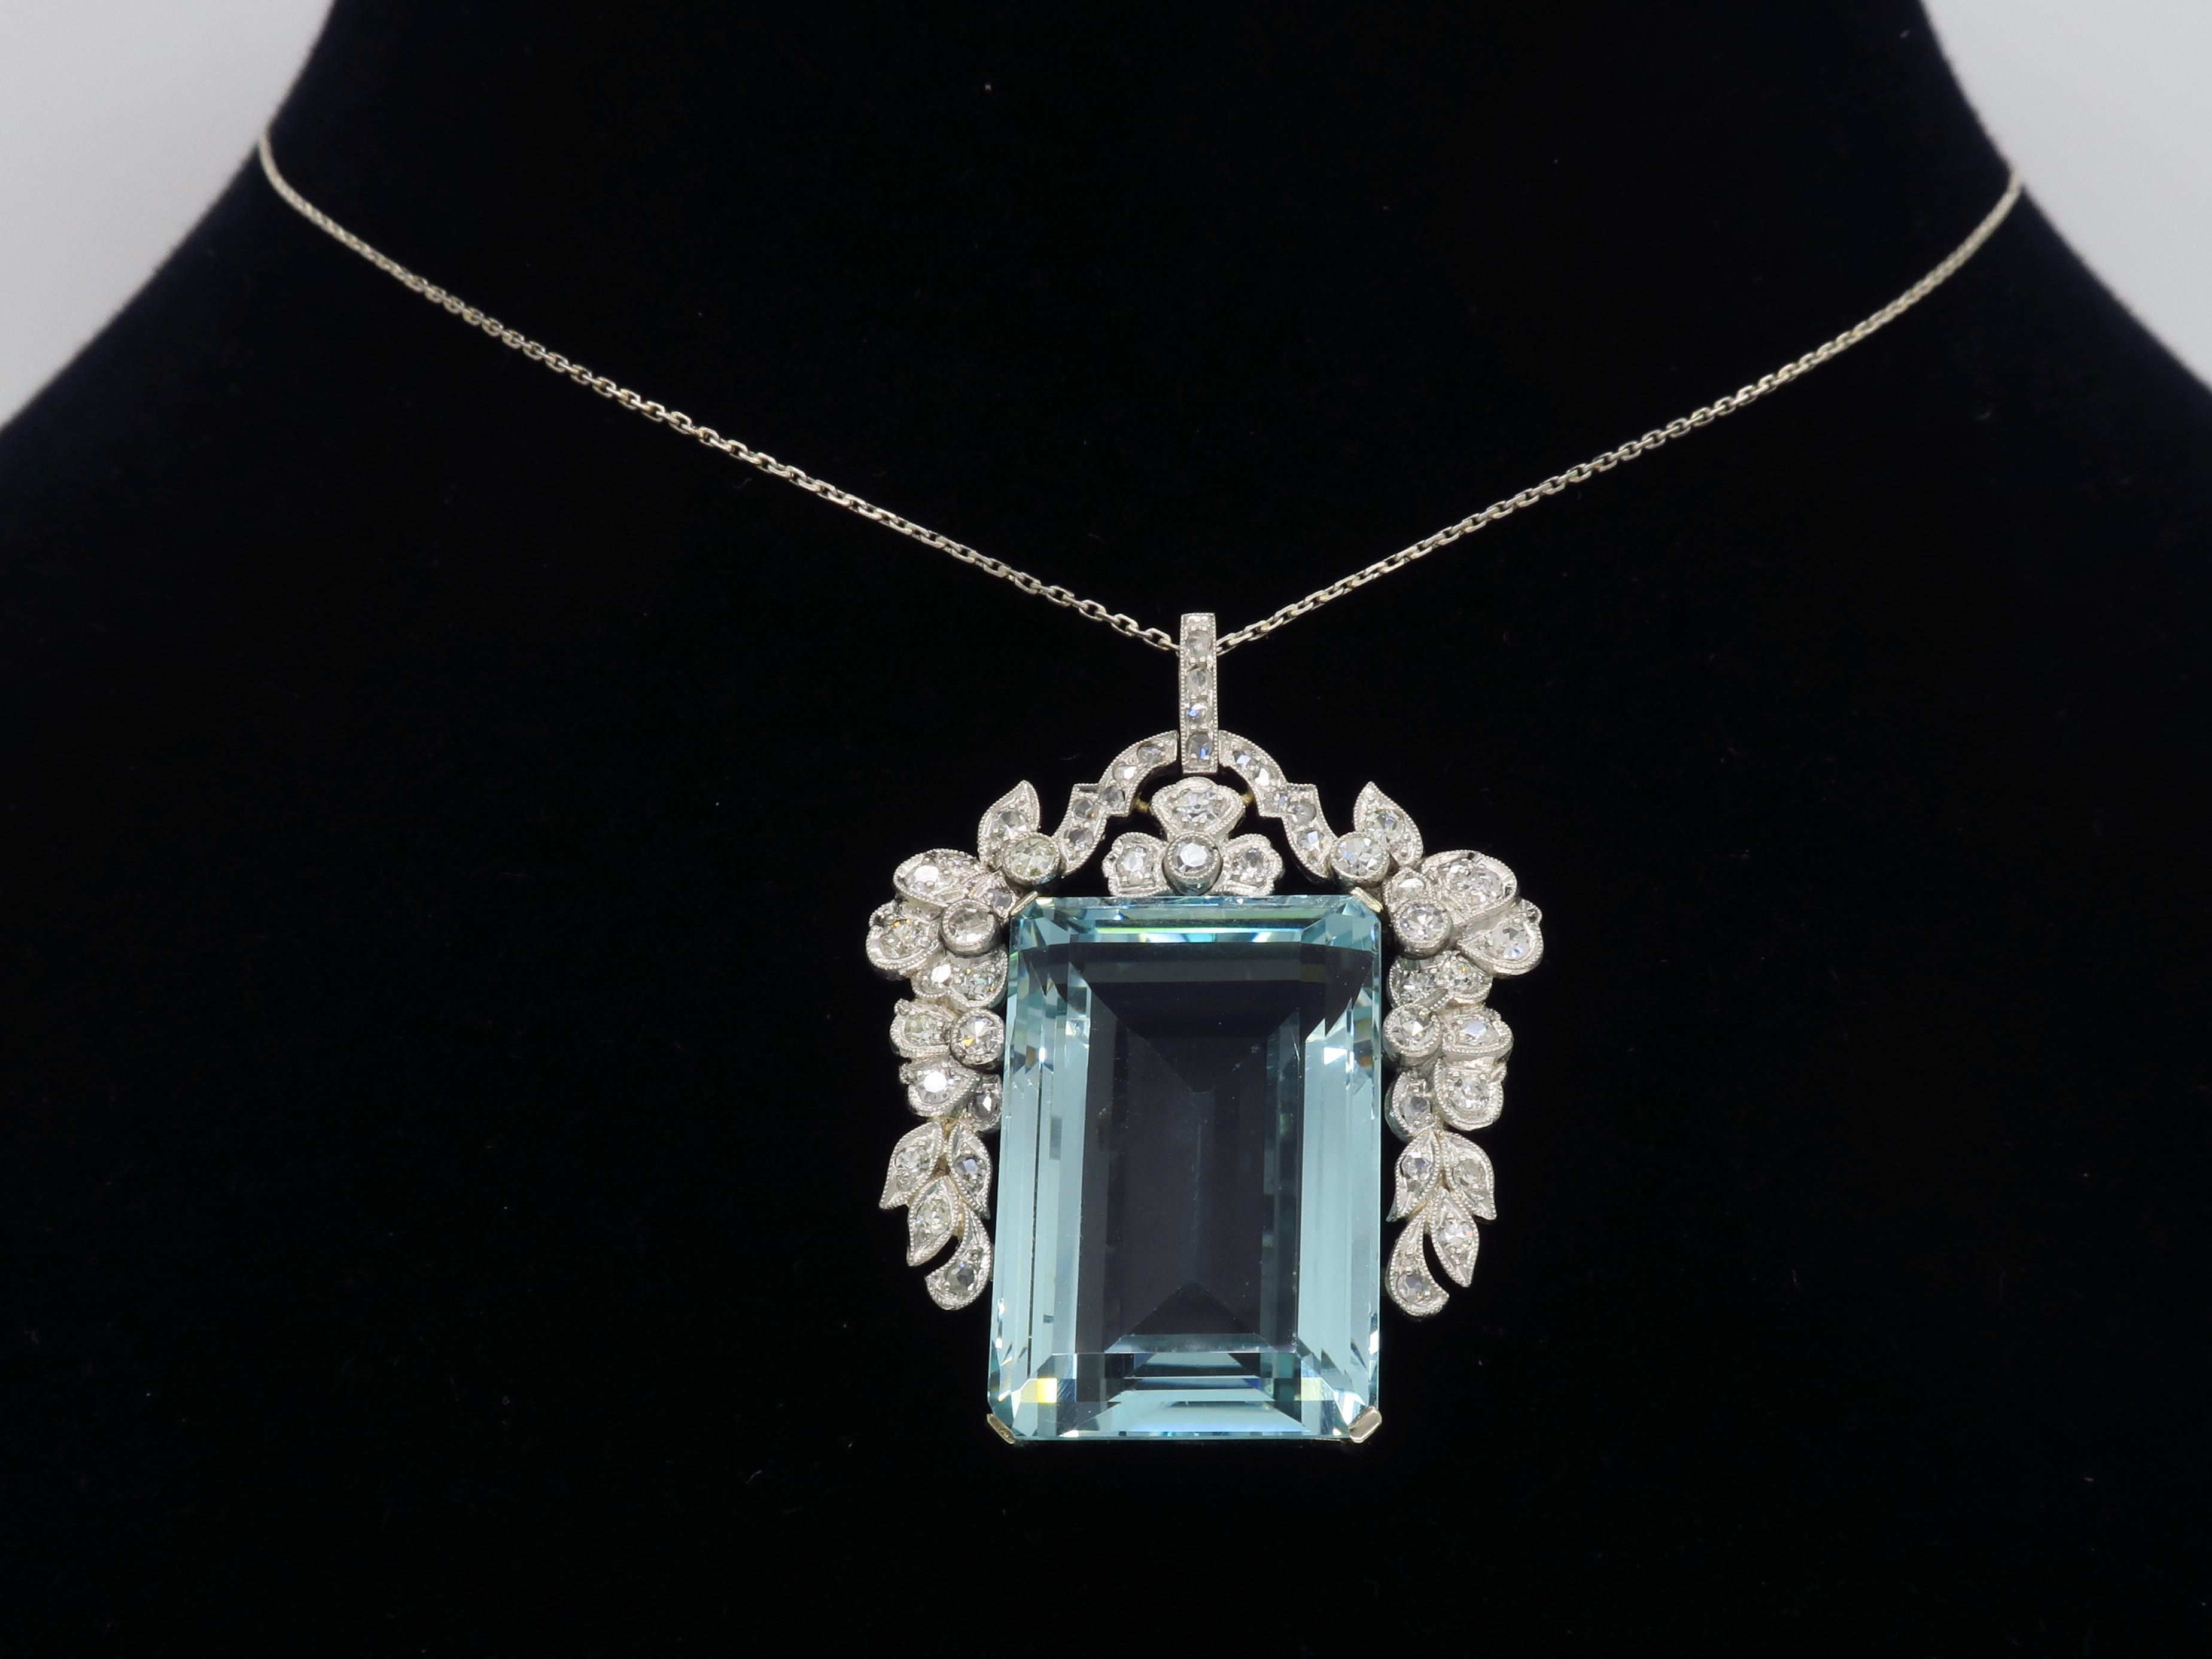 Certified Natural Aquamarine And Diamond Pendant Necklace In Platinum For Most Popular Reversible Diamond, Sapphire And Aquamarine Pendant Necklaces (View 12 of 25)